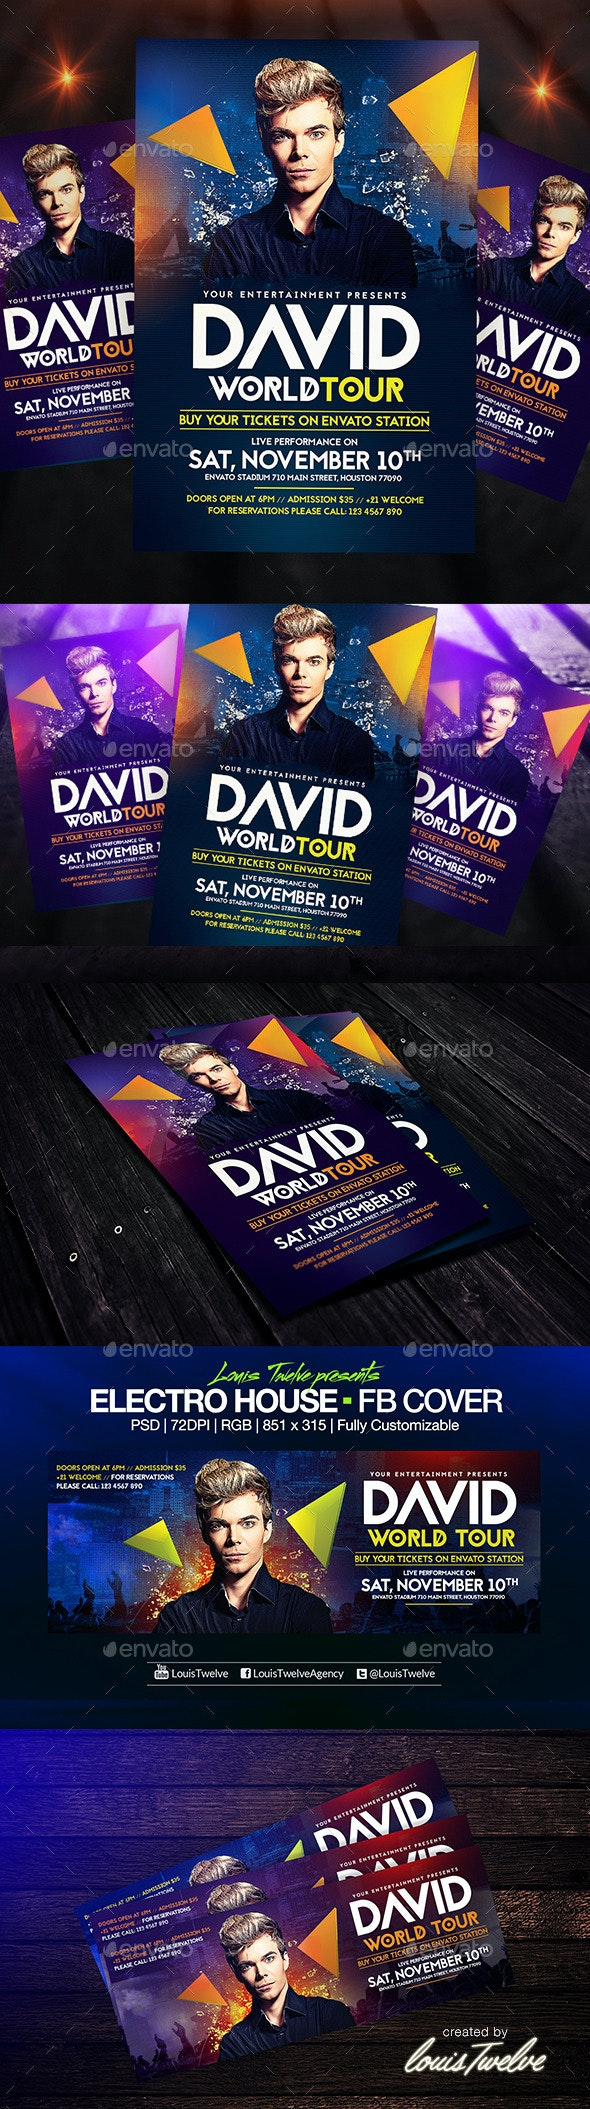 Electro House Flyer Template + FB Cover - Clubs & Parties Events